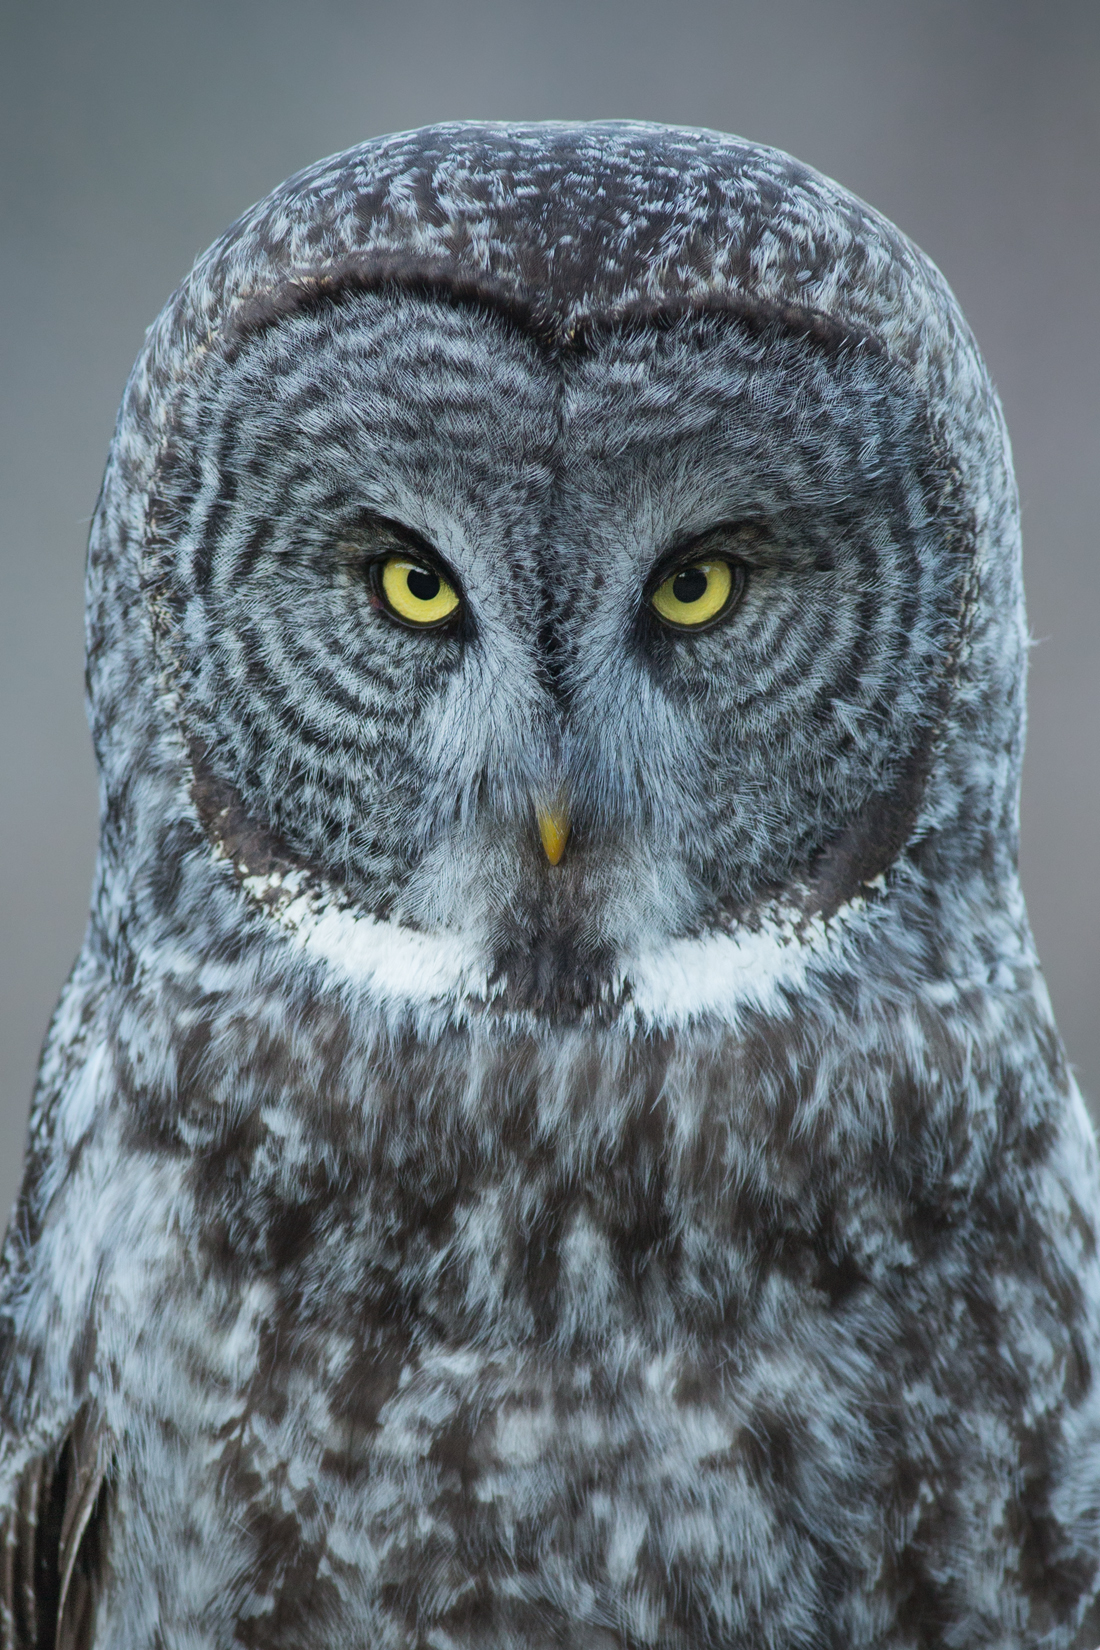 The stare of a Great Grey Owl is something one won't soon forget. This individual, born the previous spring, was photographed along British Columbia's South Coast.